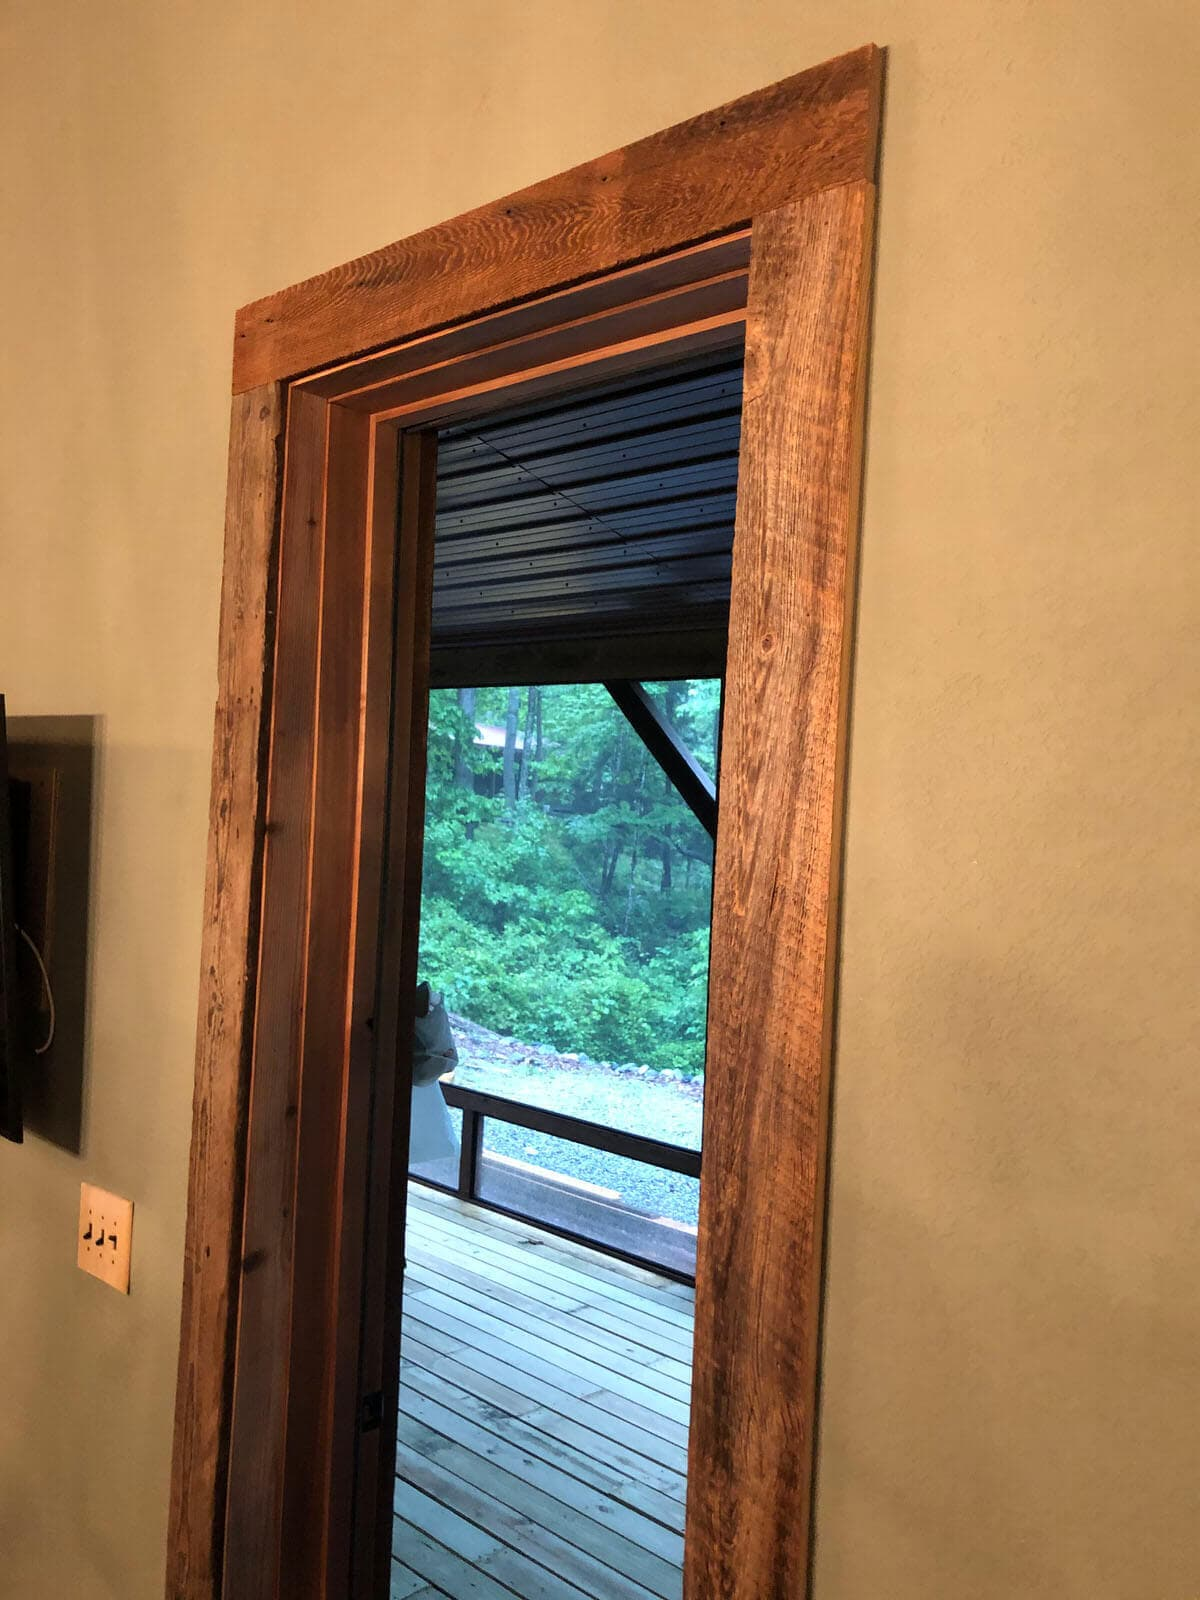 Original Surface Pine Casing around a door looking outside